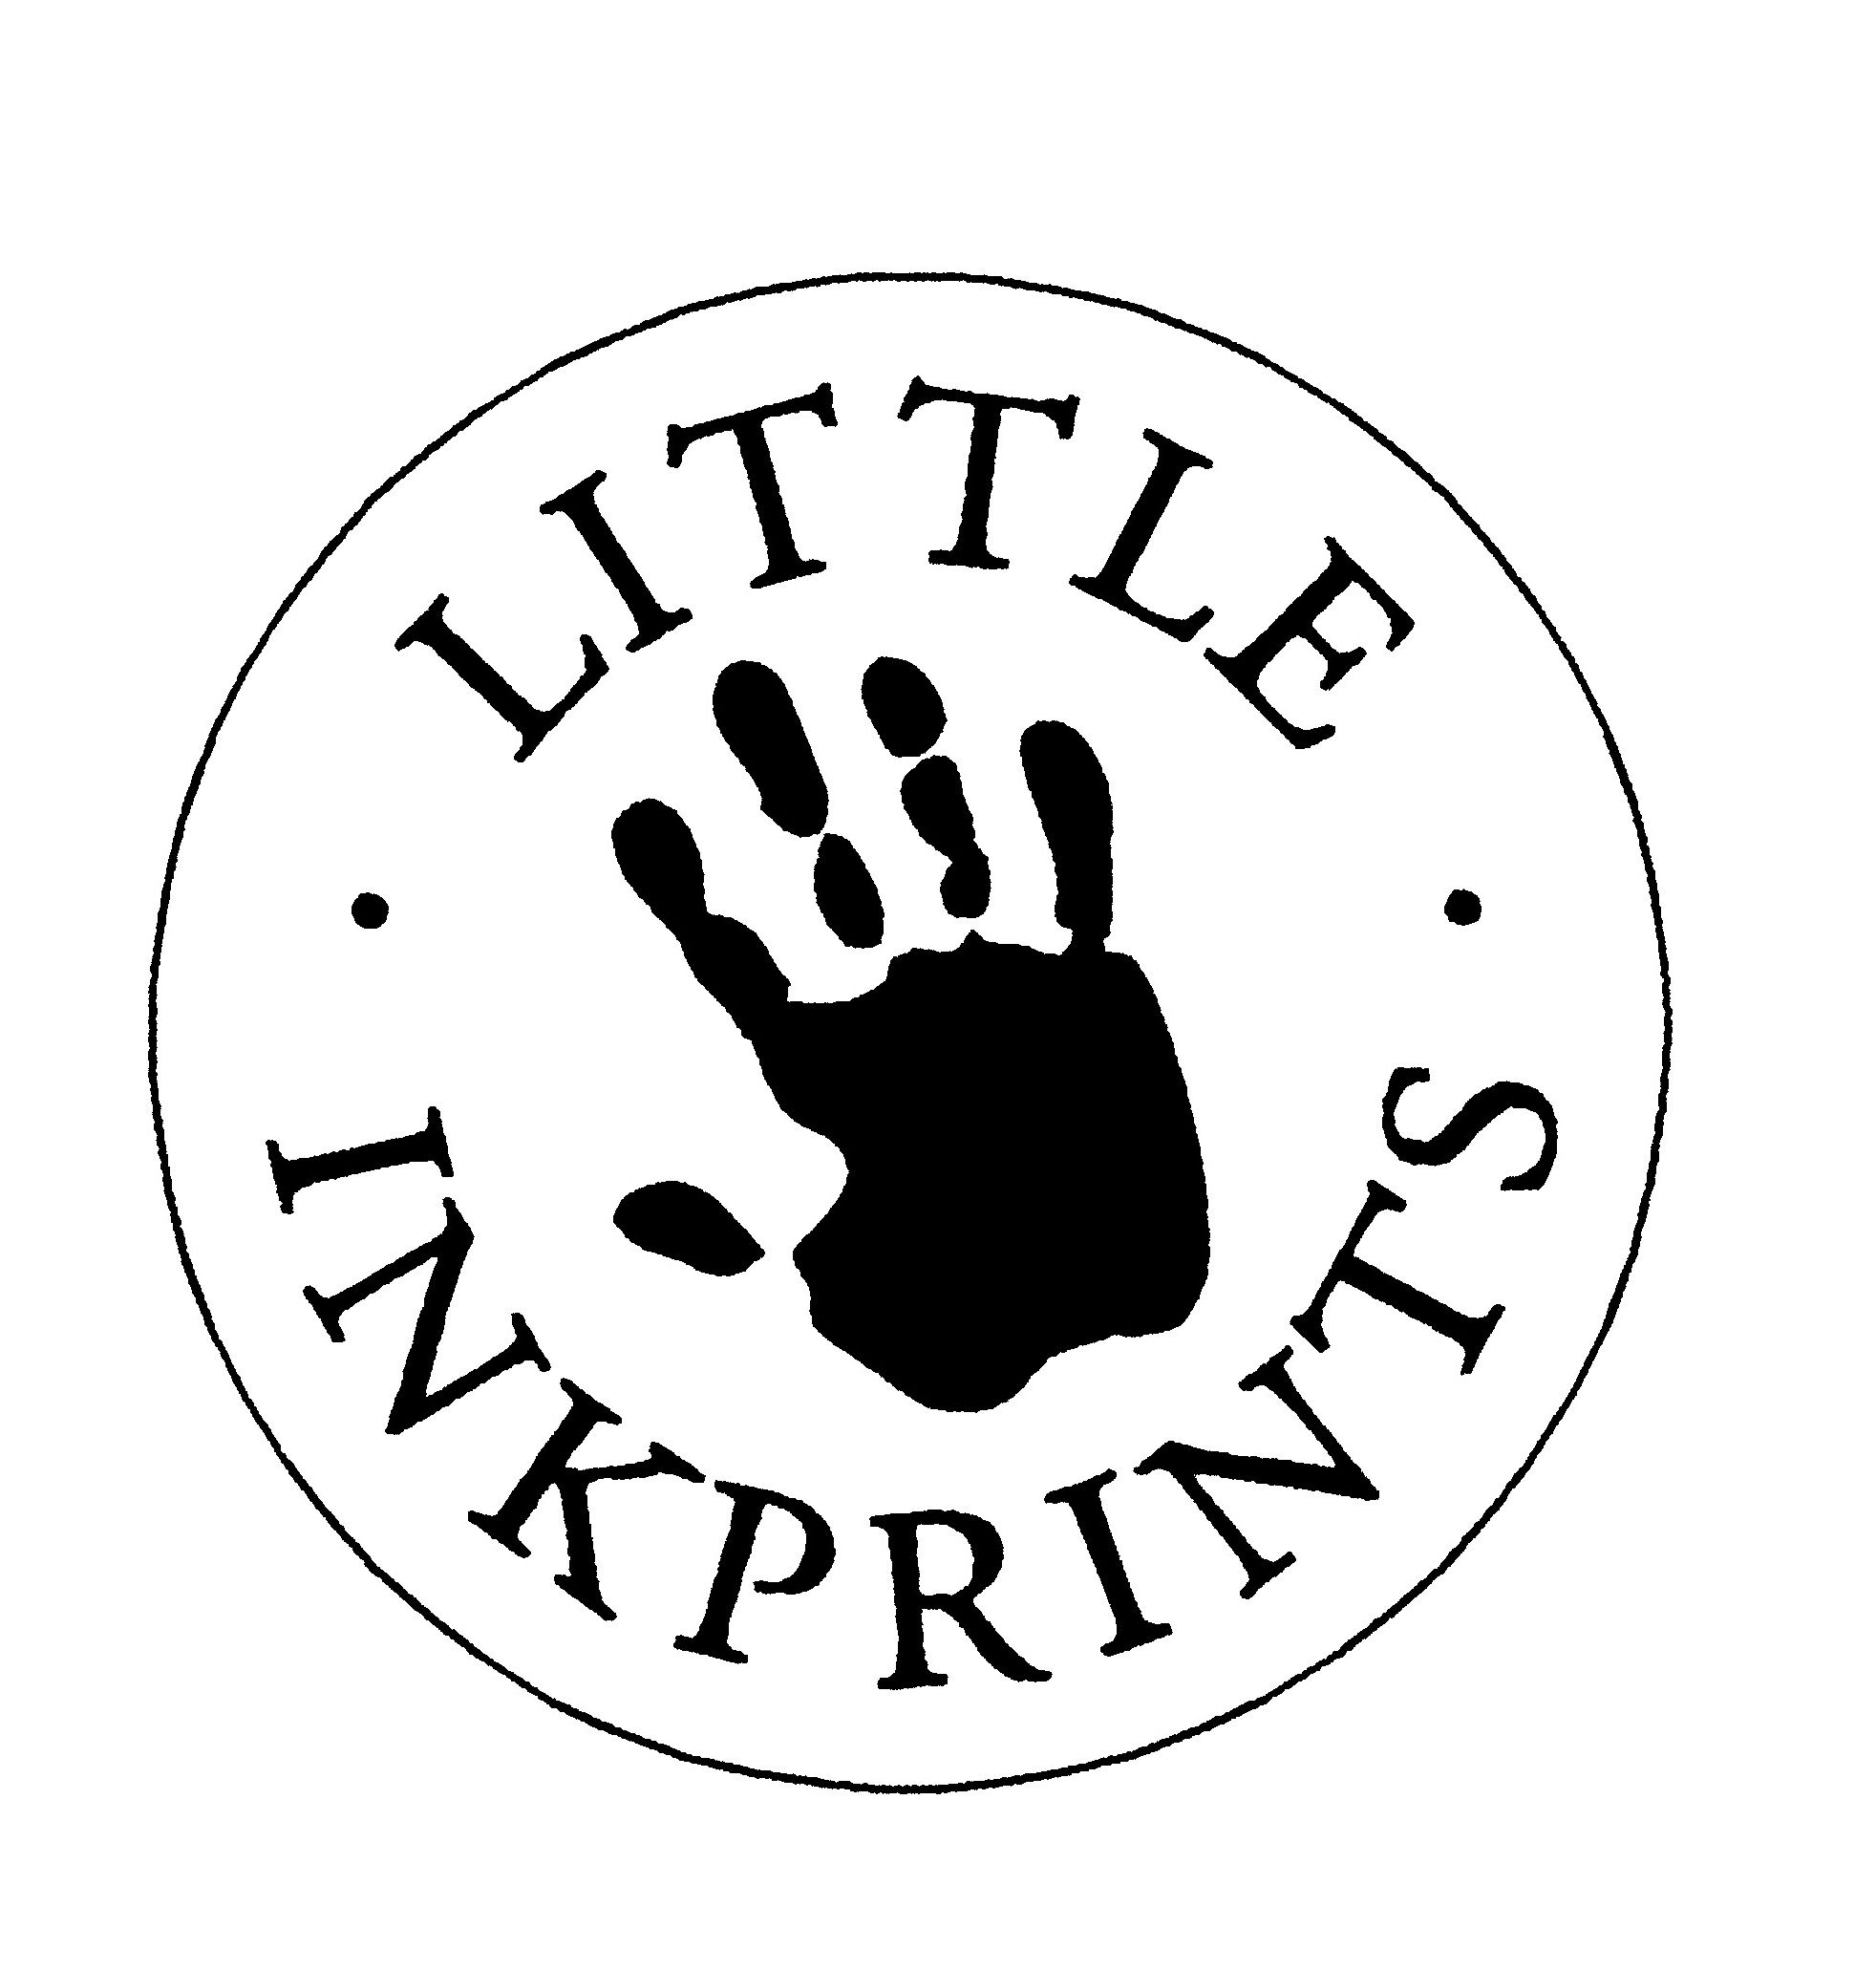 The Little Inkprints kits contain everything you need to